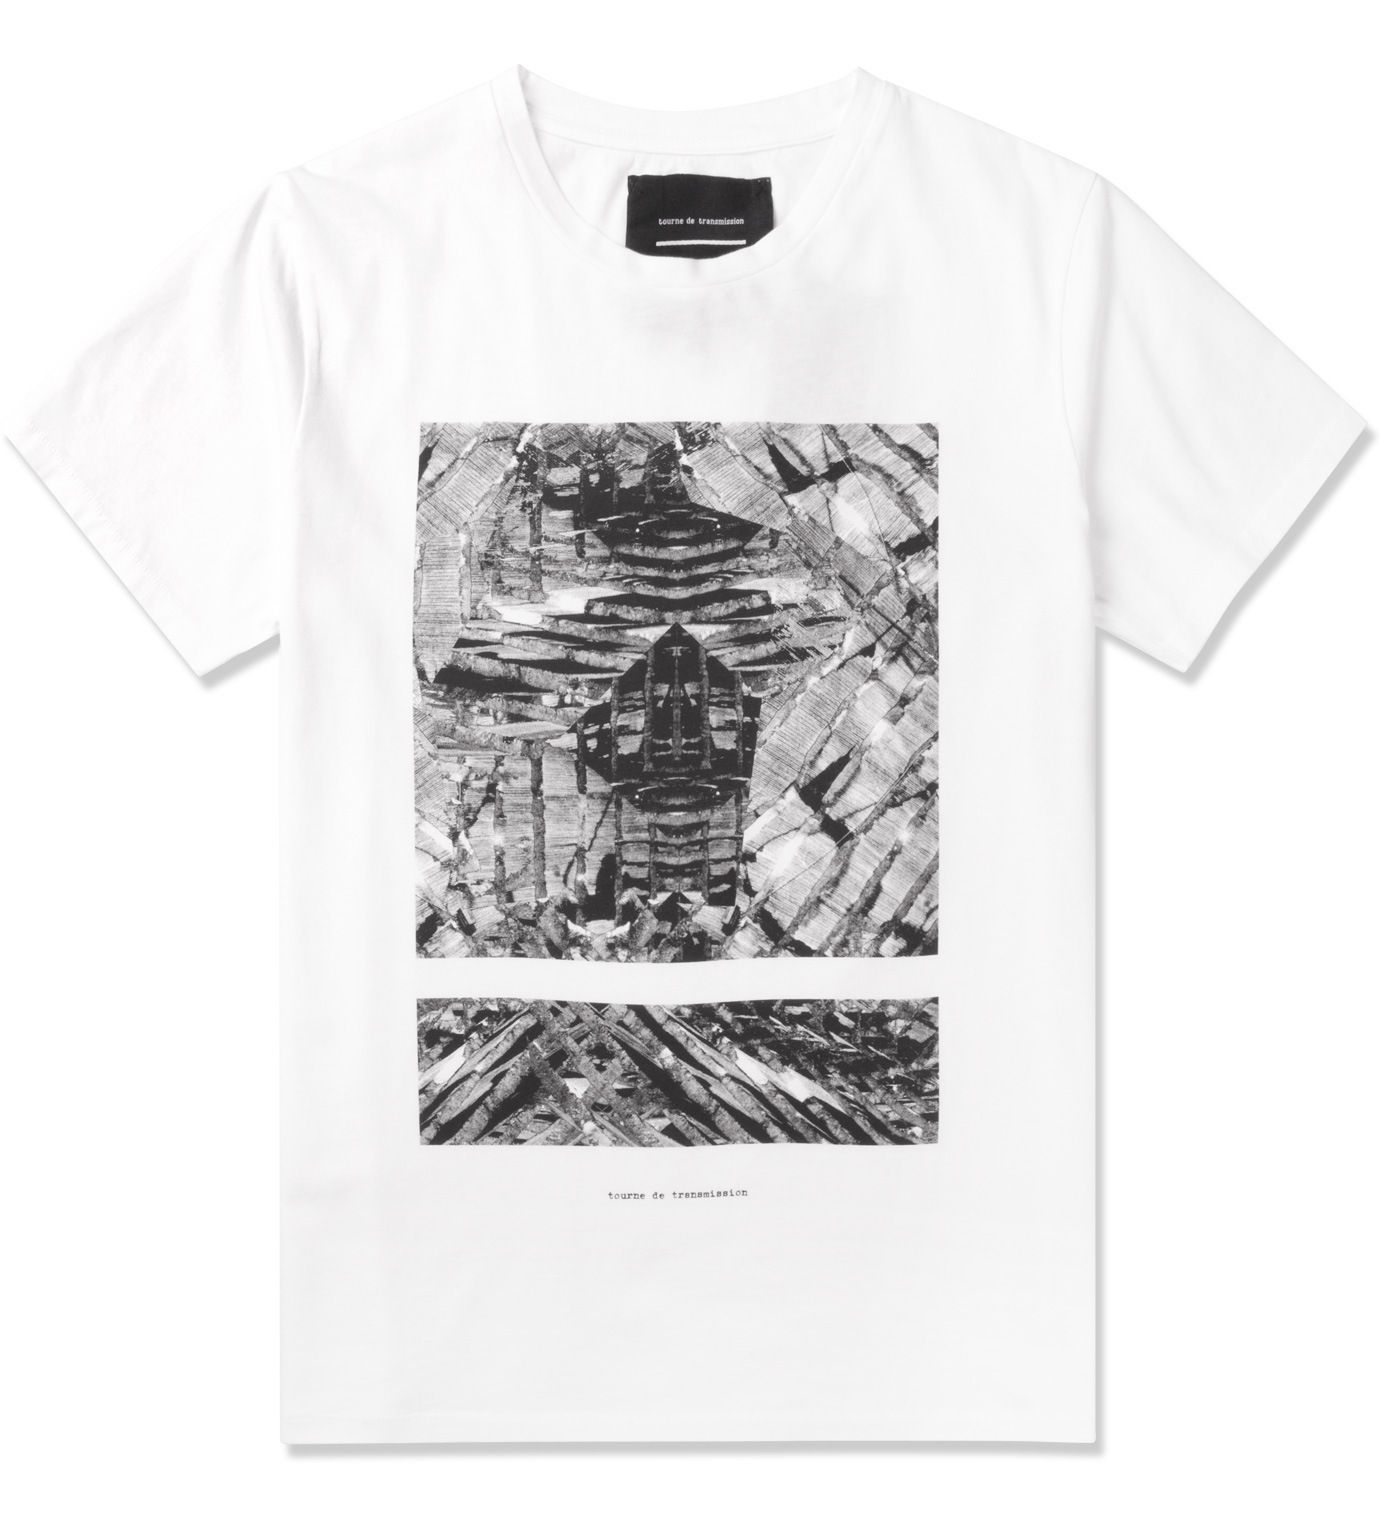 Tourne de Transmission White Shatter Split Box Print T-Shirt ...